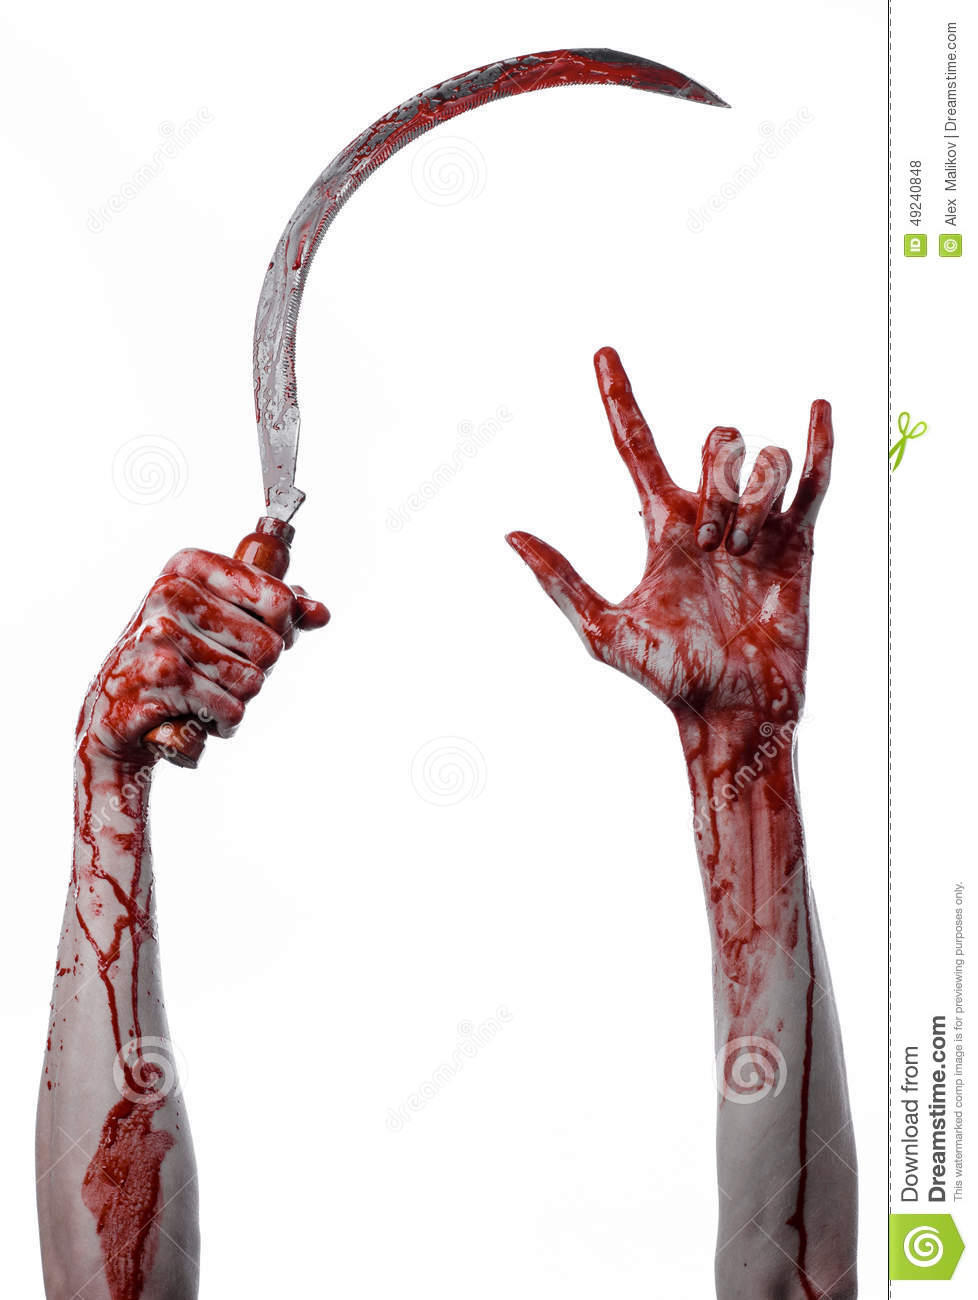 bloody hand holding - photo #9